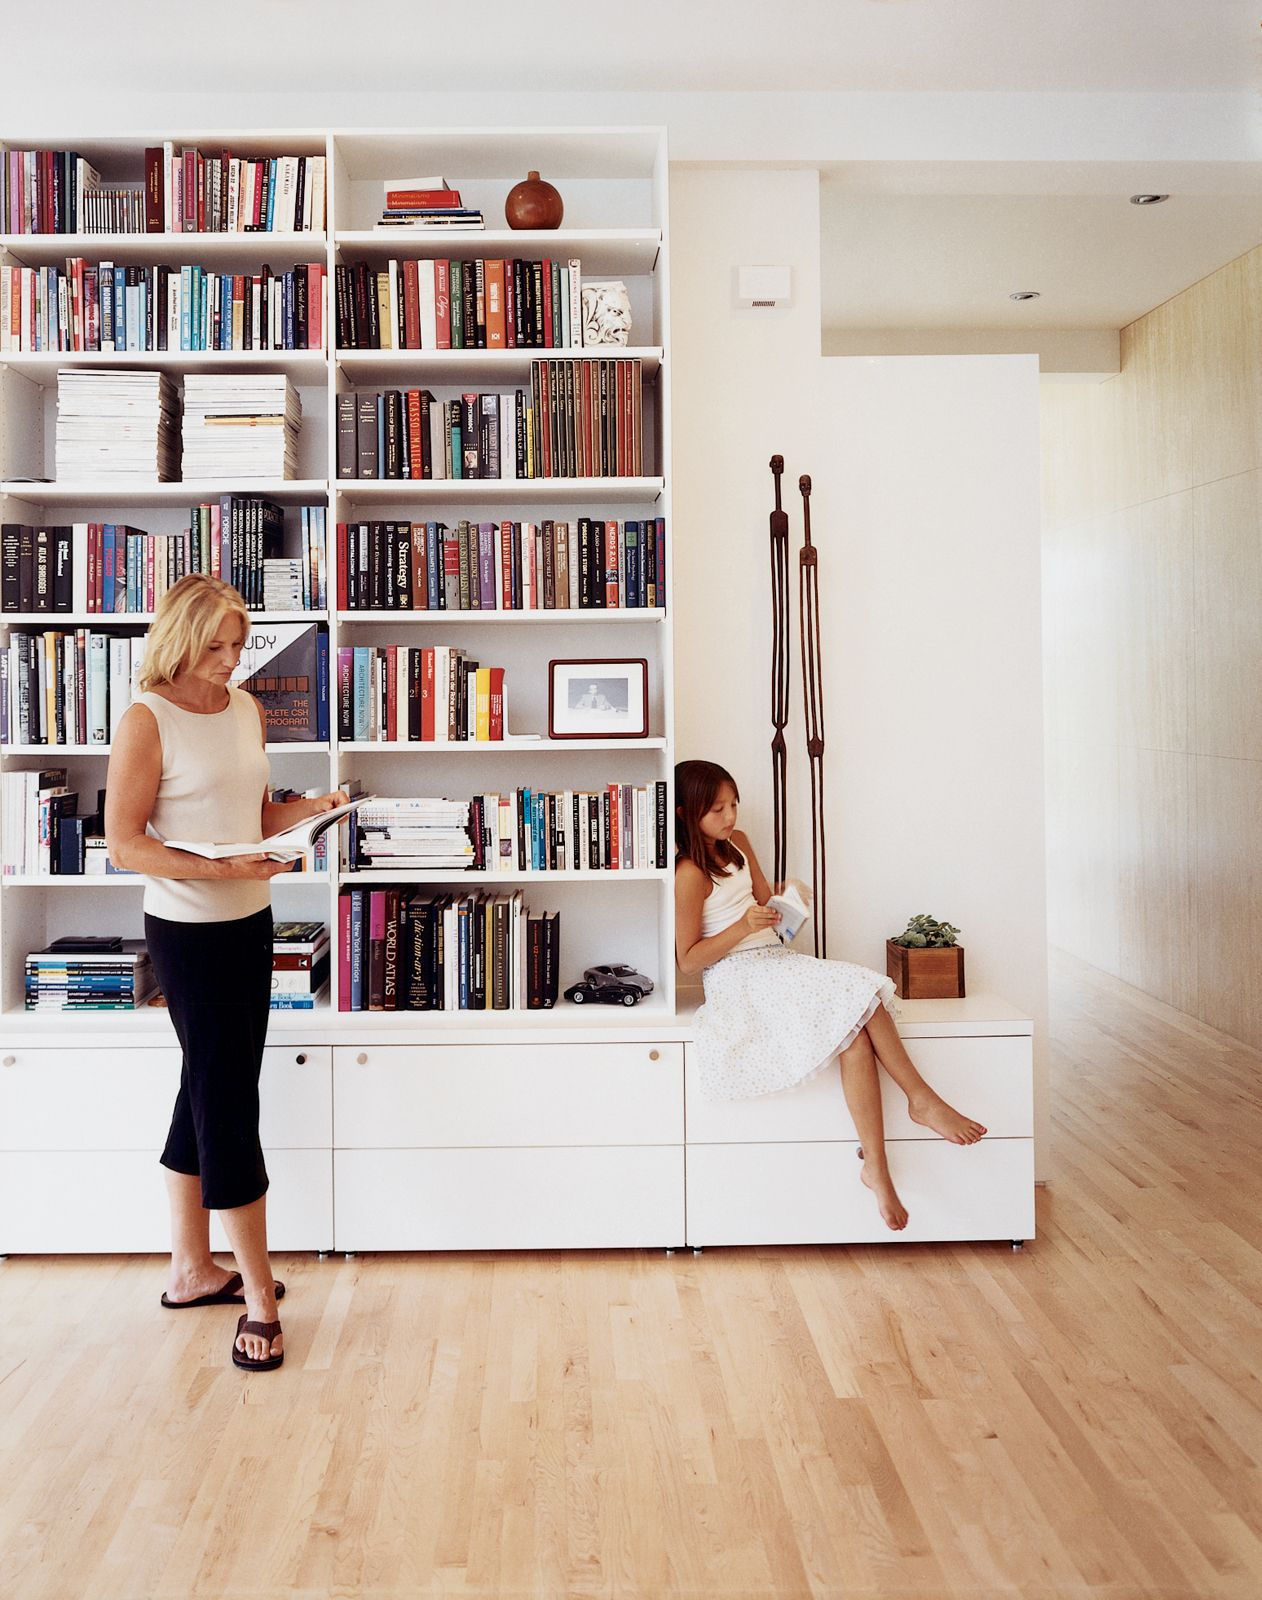 Search Bookshelves From Modern Awakening Bookshelves In Living Room Tall Bookshelves Living Room White Bookshelves